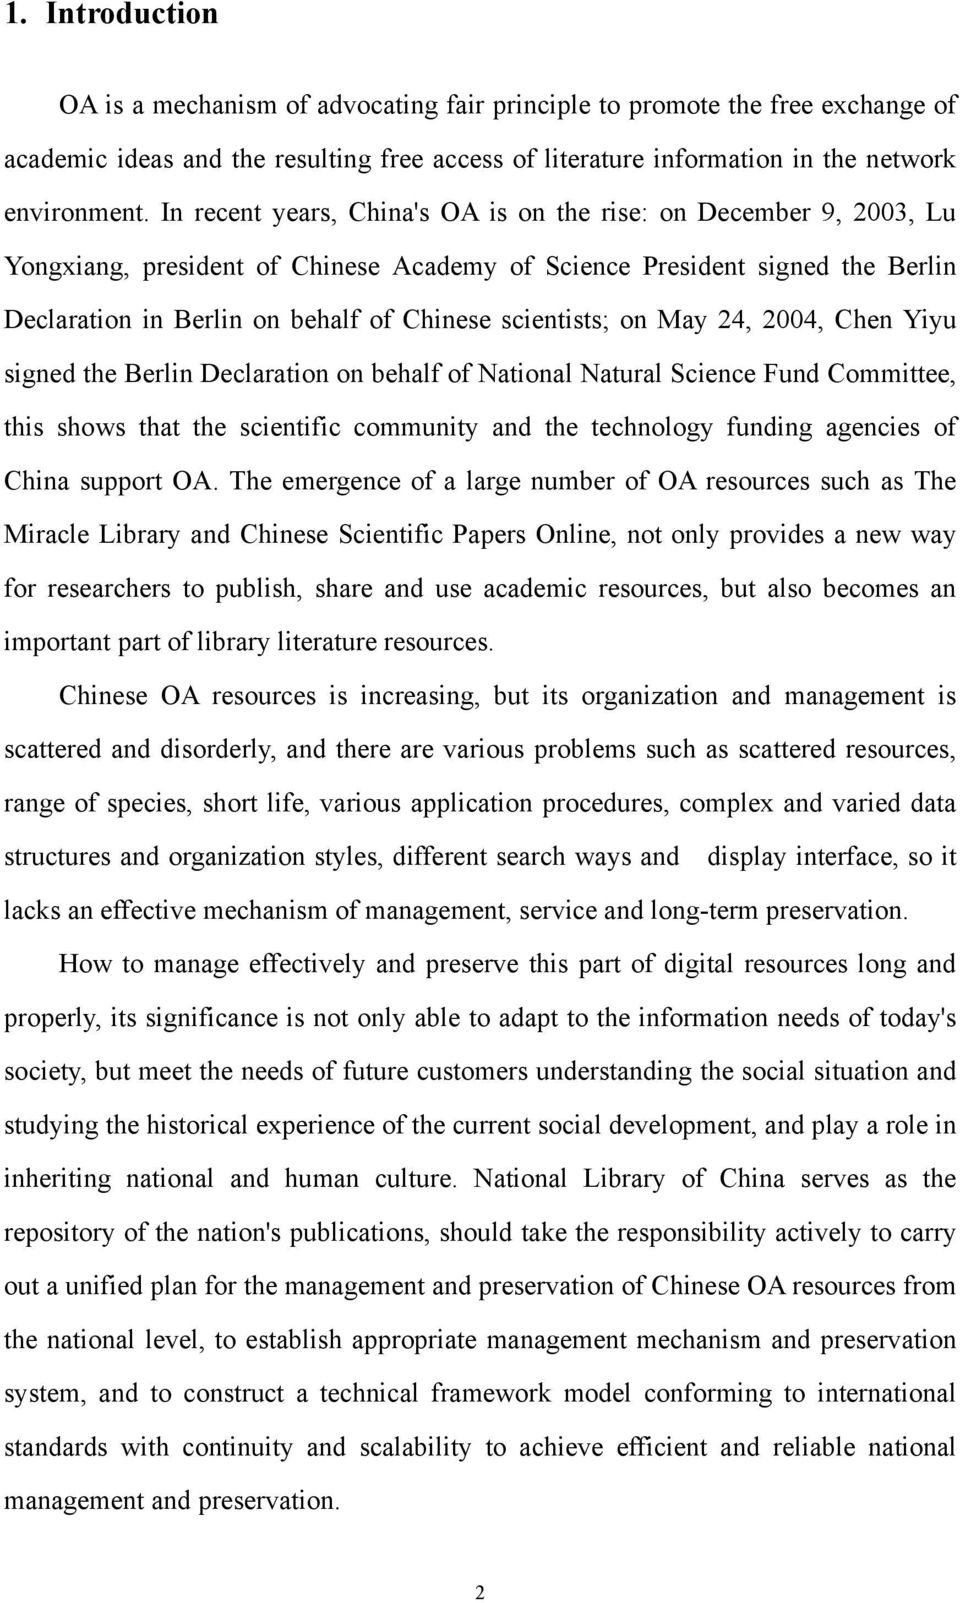 scientists; on May 24, 2004, Chen Yiyu signed the Berlin Declaration on behalf of National Natural Science Fund Committee, this shows that the scientific community and the technology funding agencies